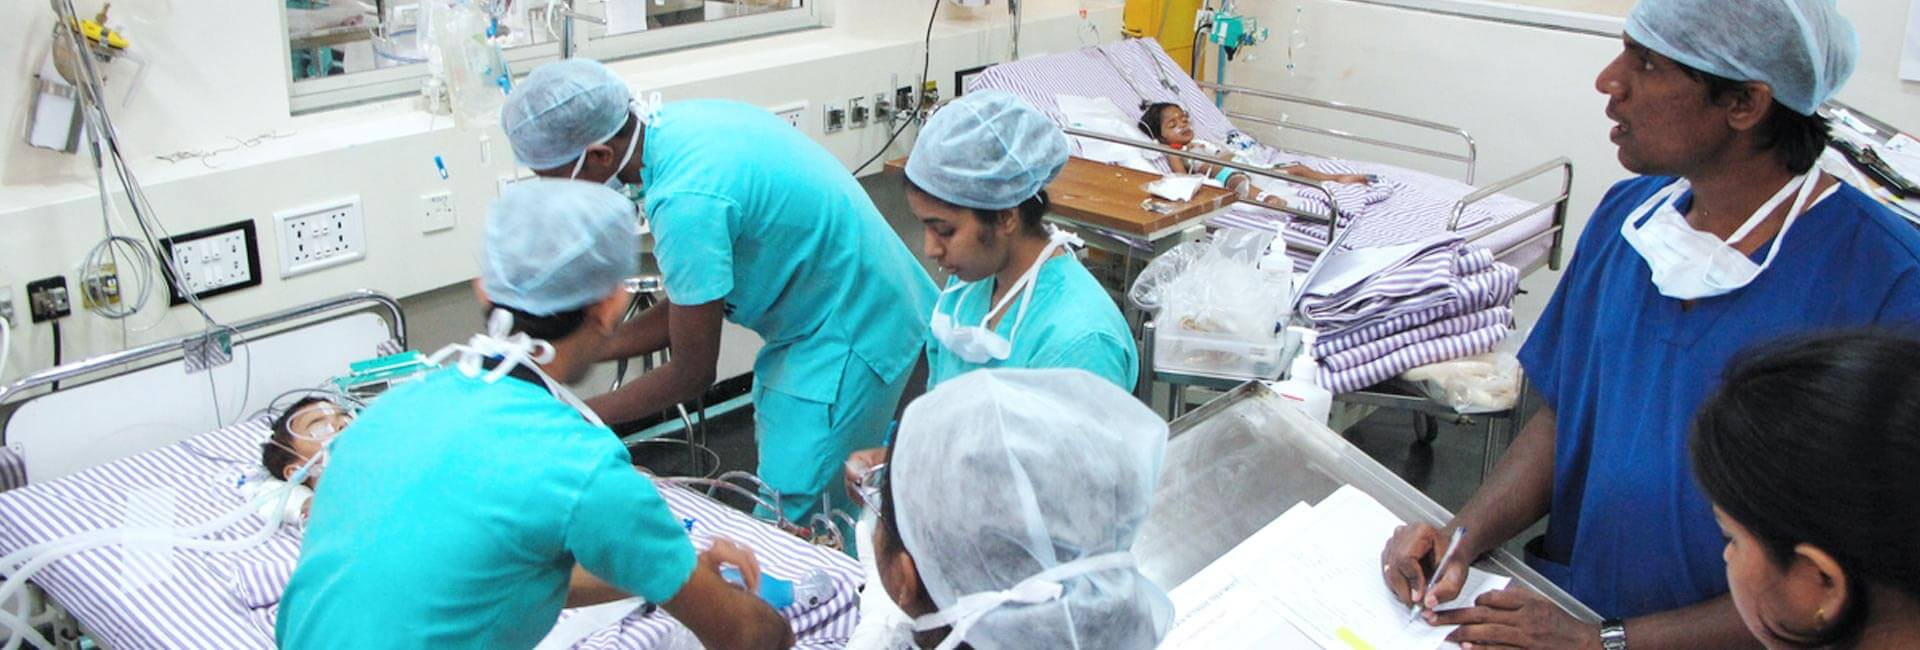 7 Easy Steps To Prepare Yourself For A Medical Emergency in India